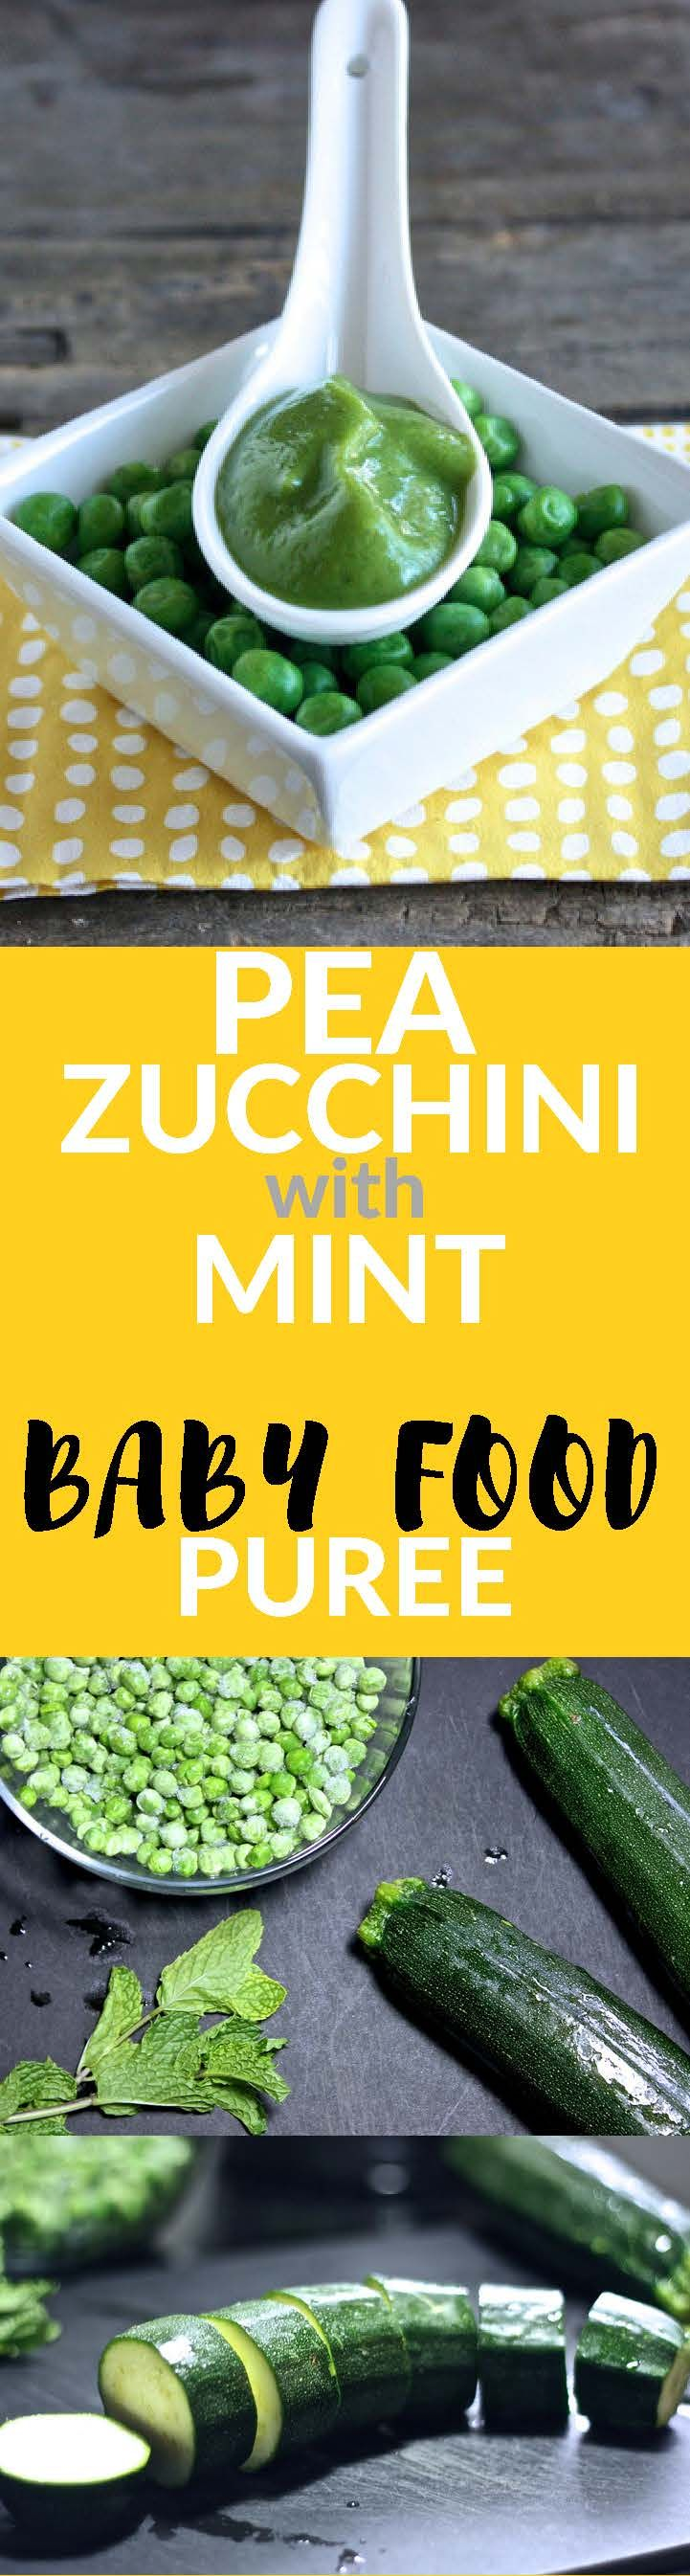 A refreshing baby food puree made with peas, zucchini and mint! A fun green puree that baby will love.